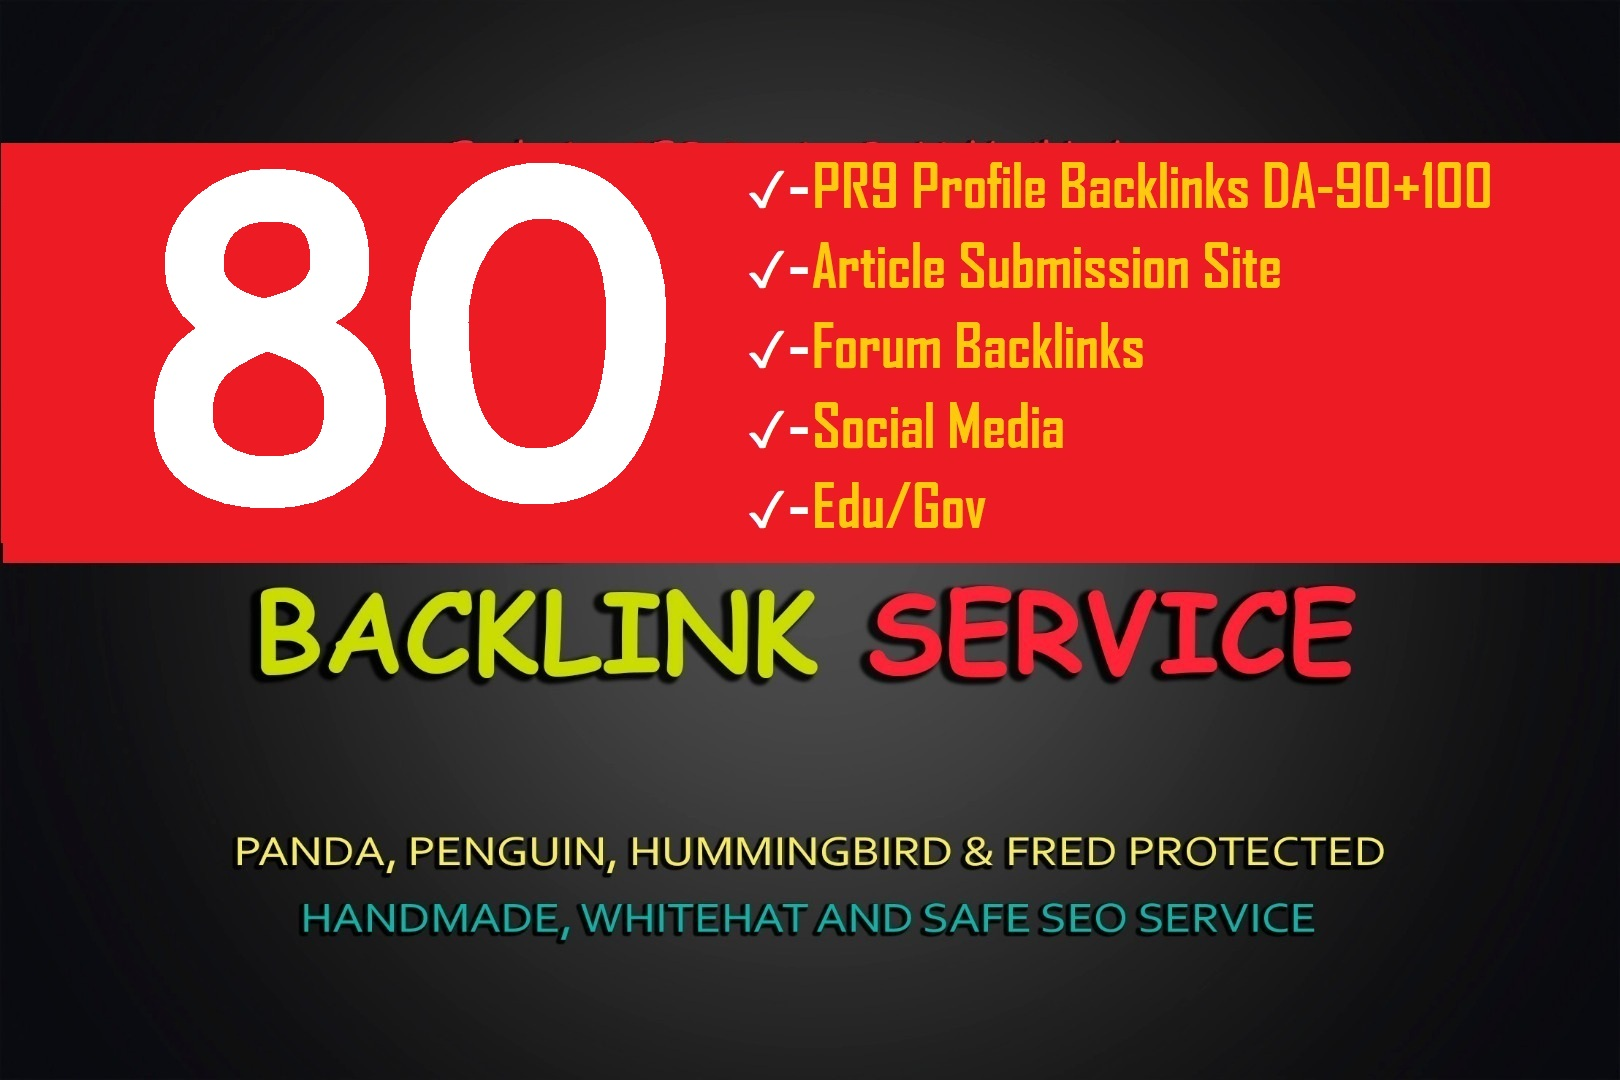 5 Step 80 SEO Backlinks Biggest PR9/EDU/Social Media/Article Submission Create For Google 1st Rank